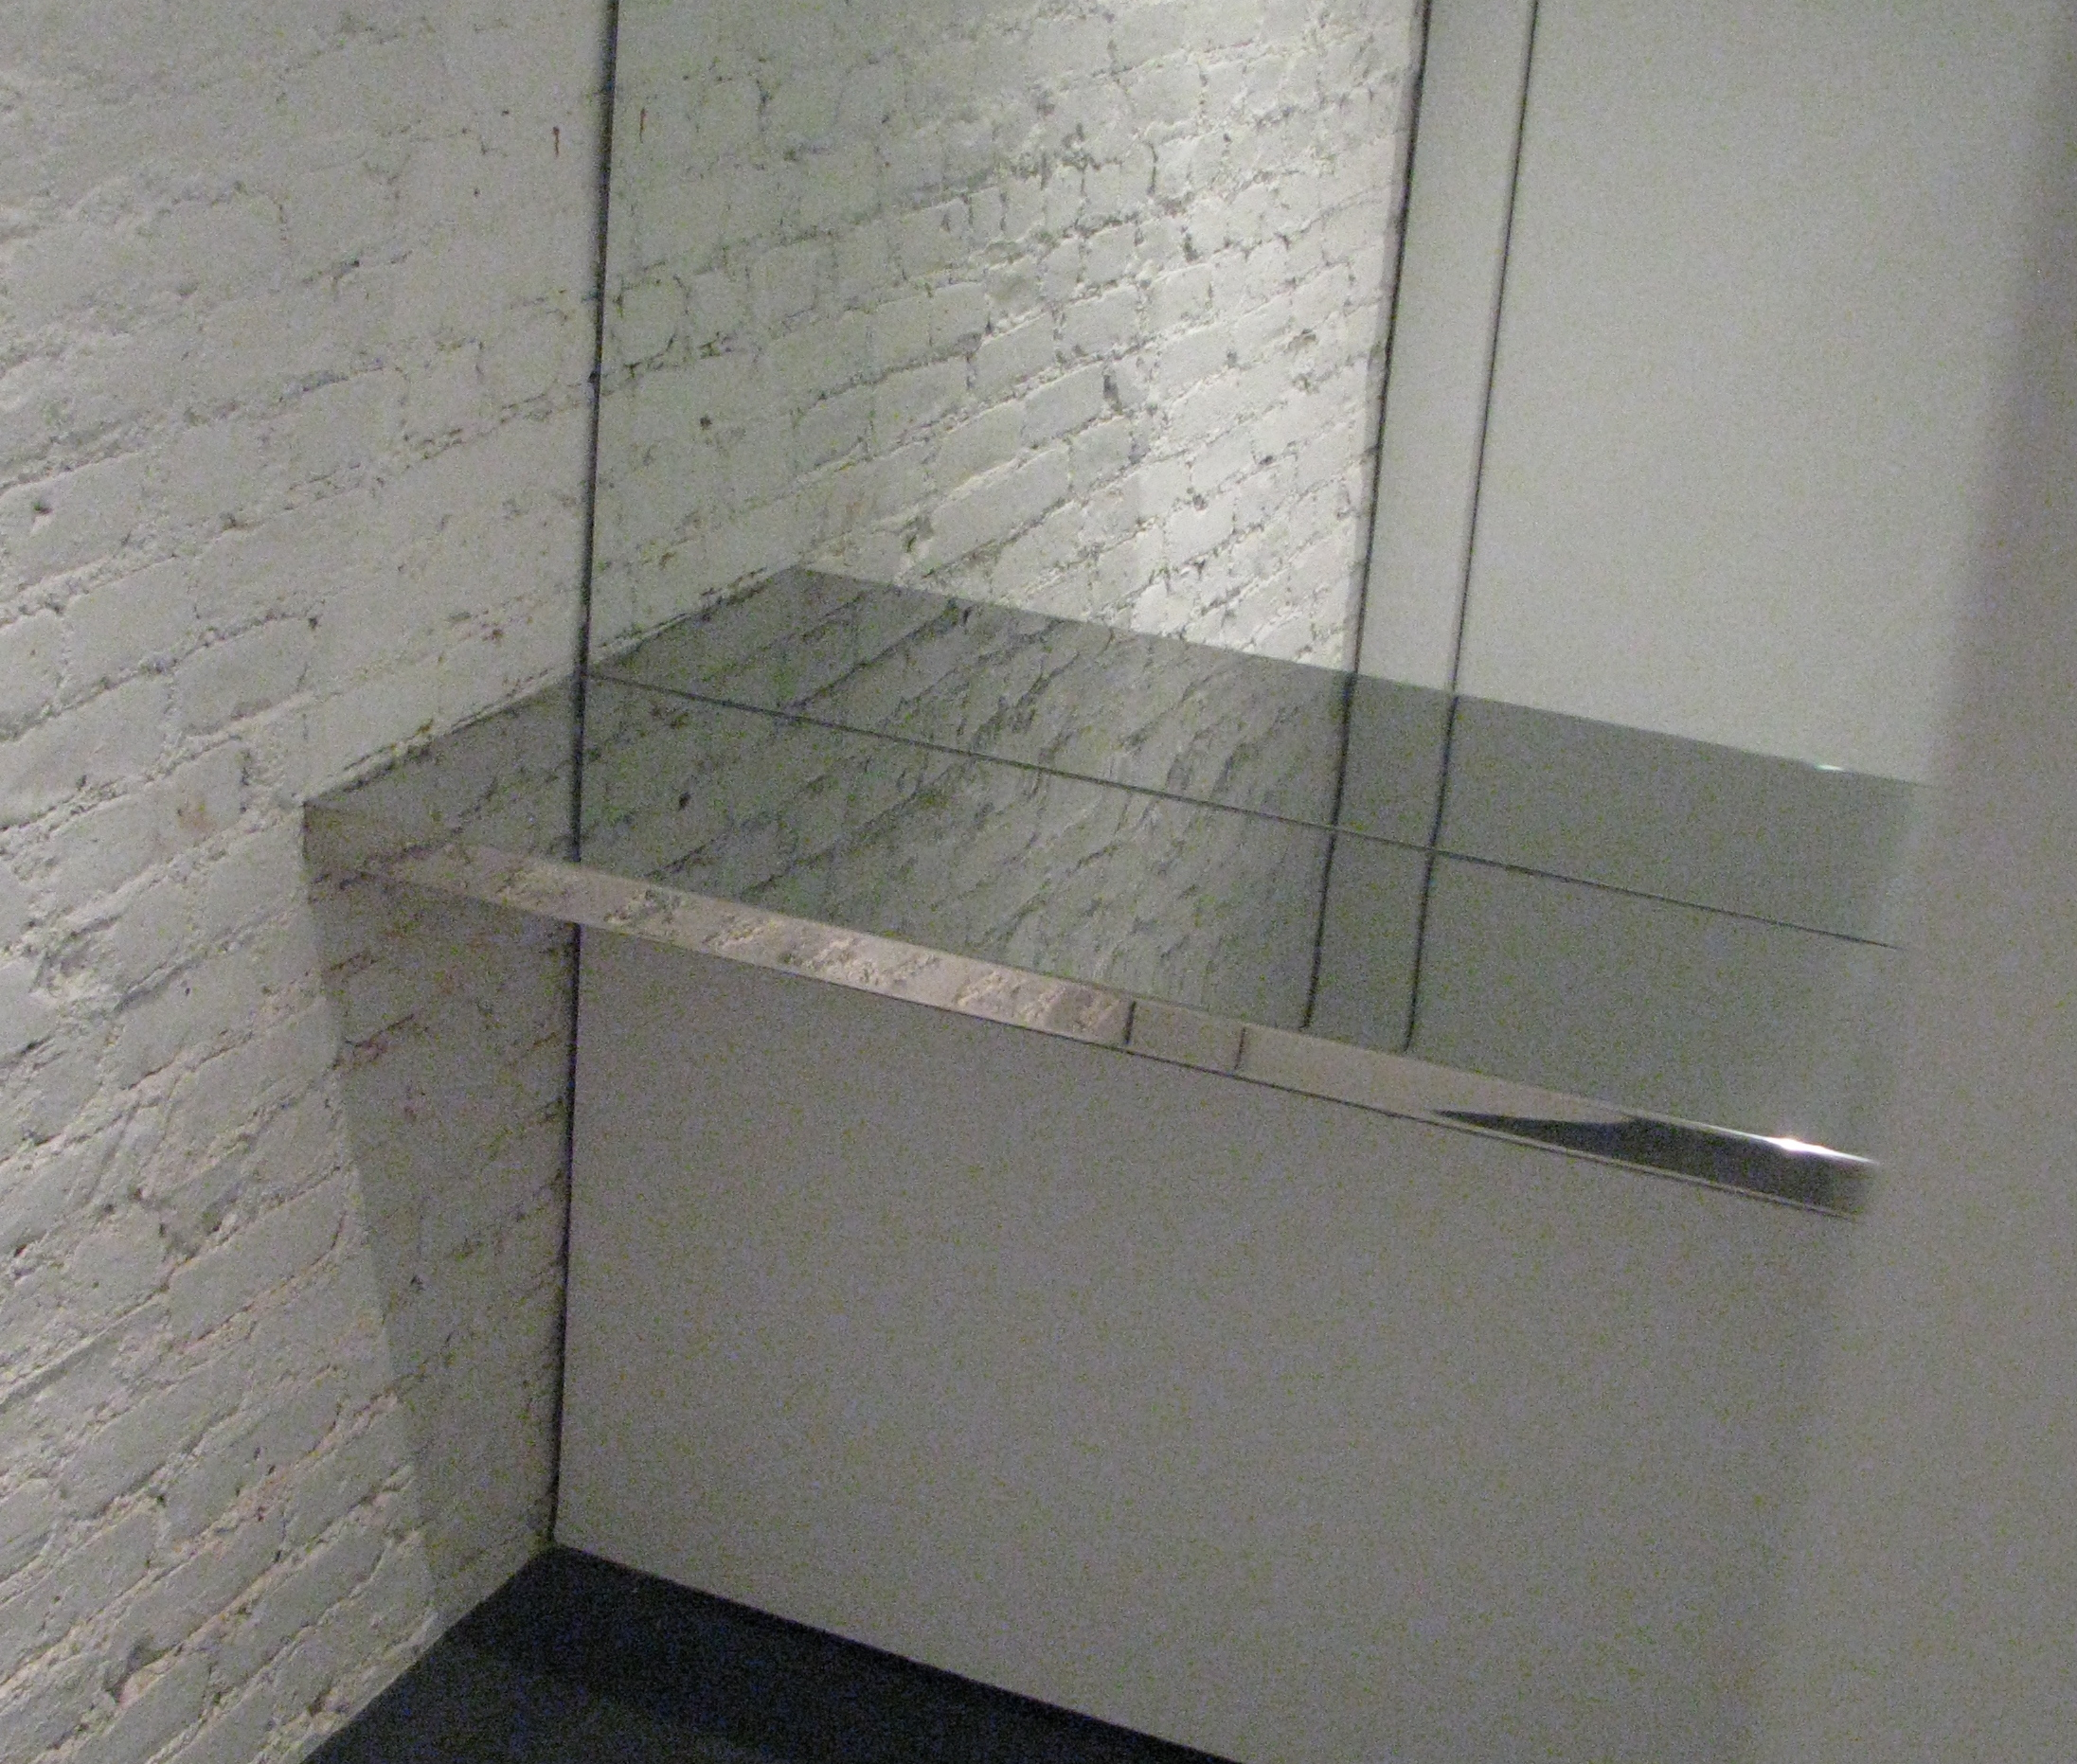 Mirror Polished Stainless Steel Dressing Room Shelf